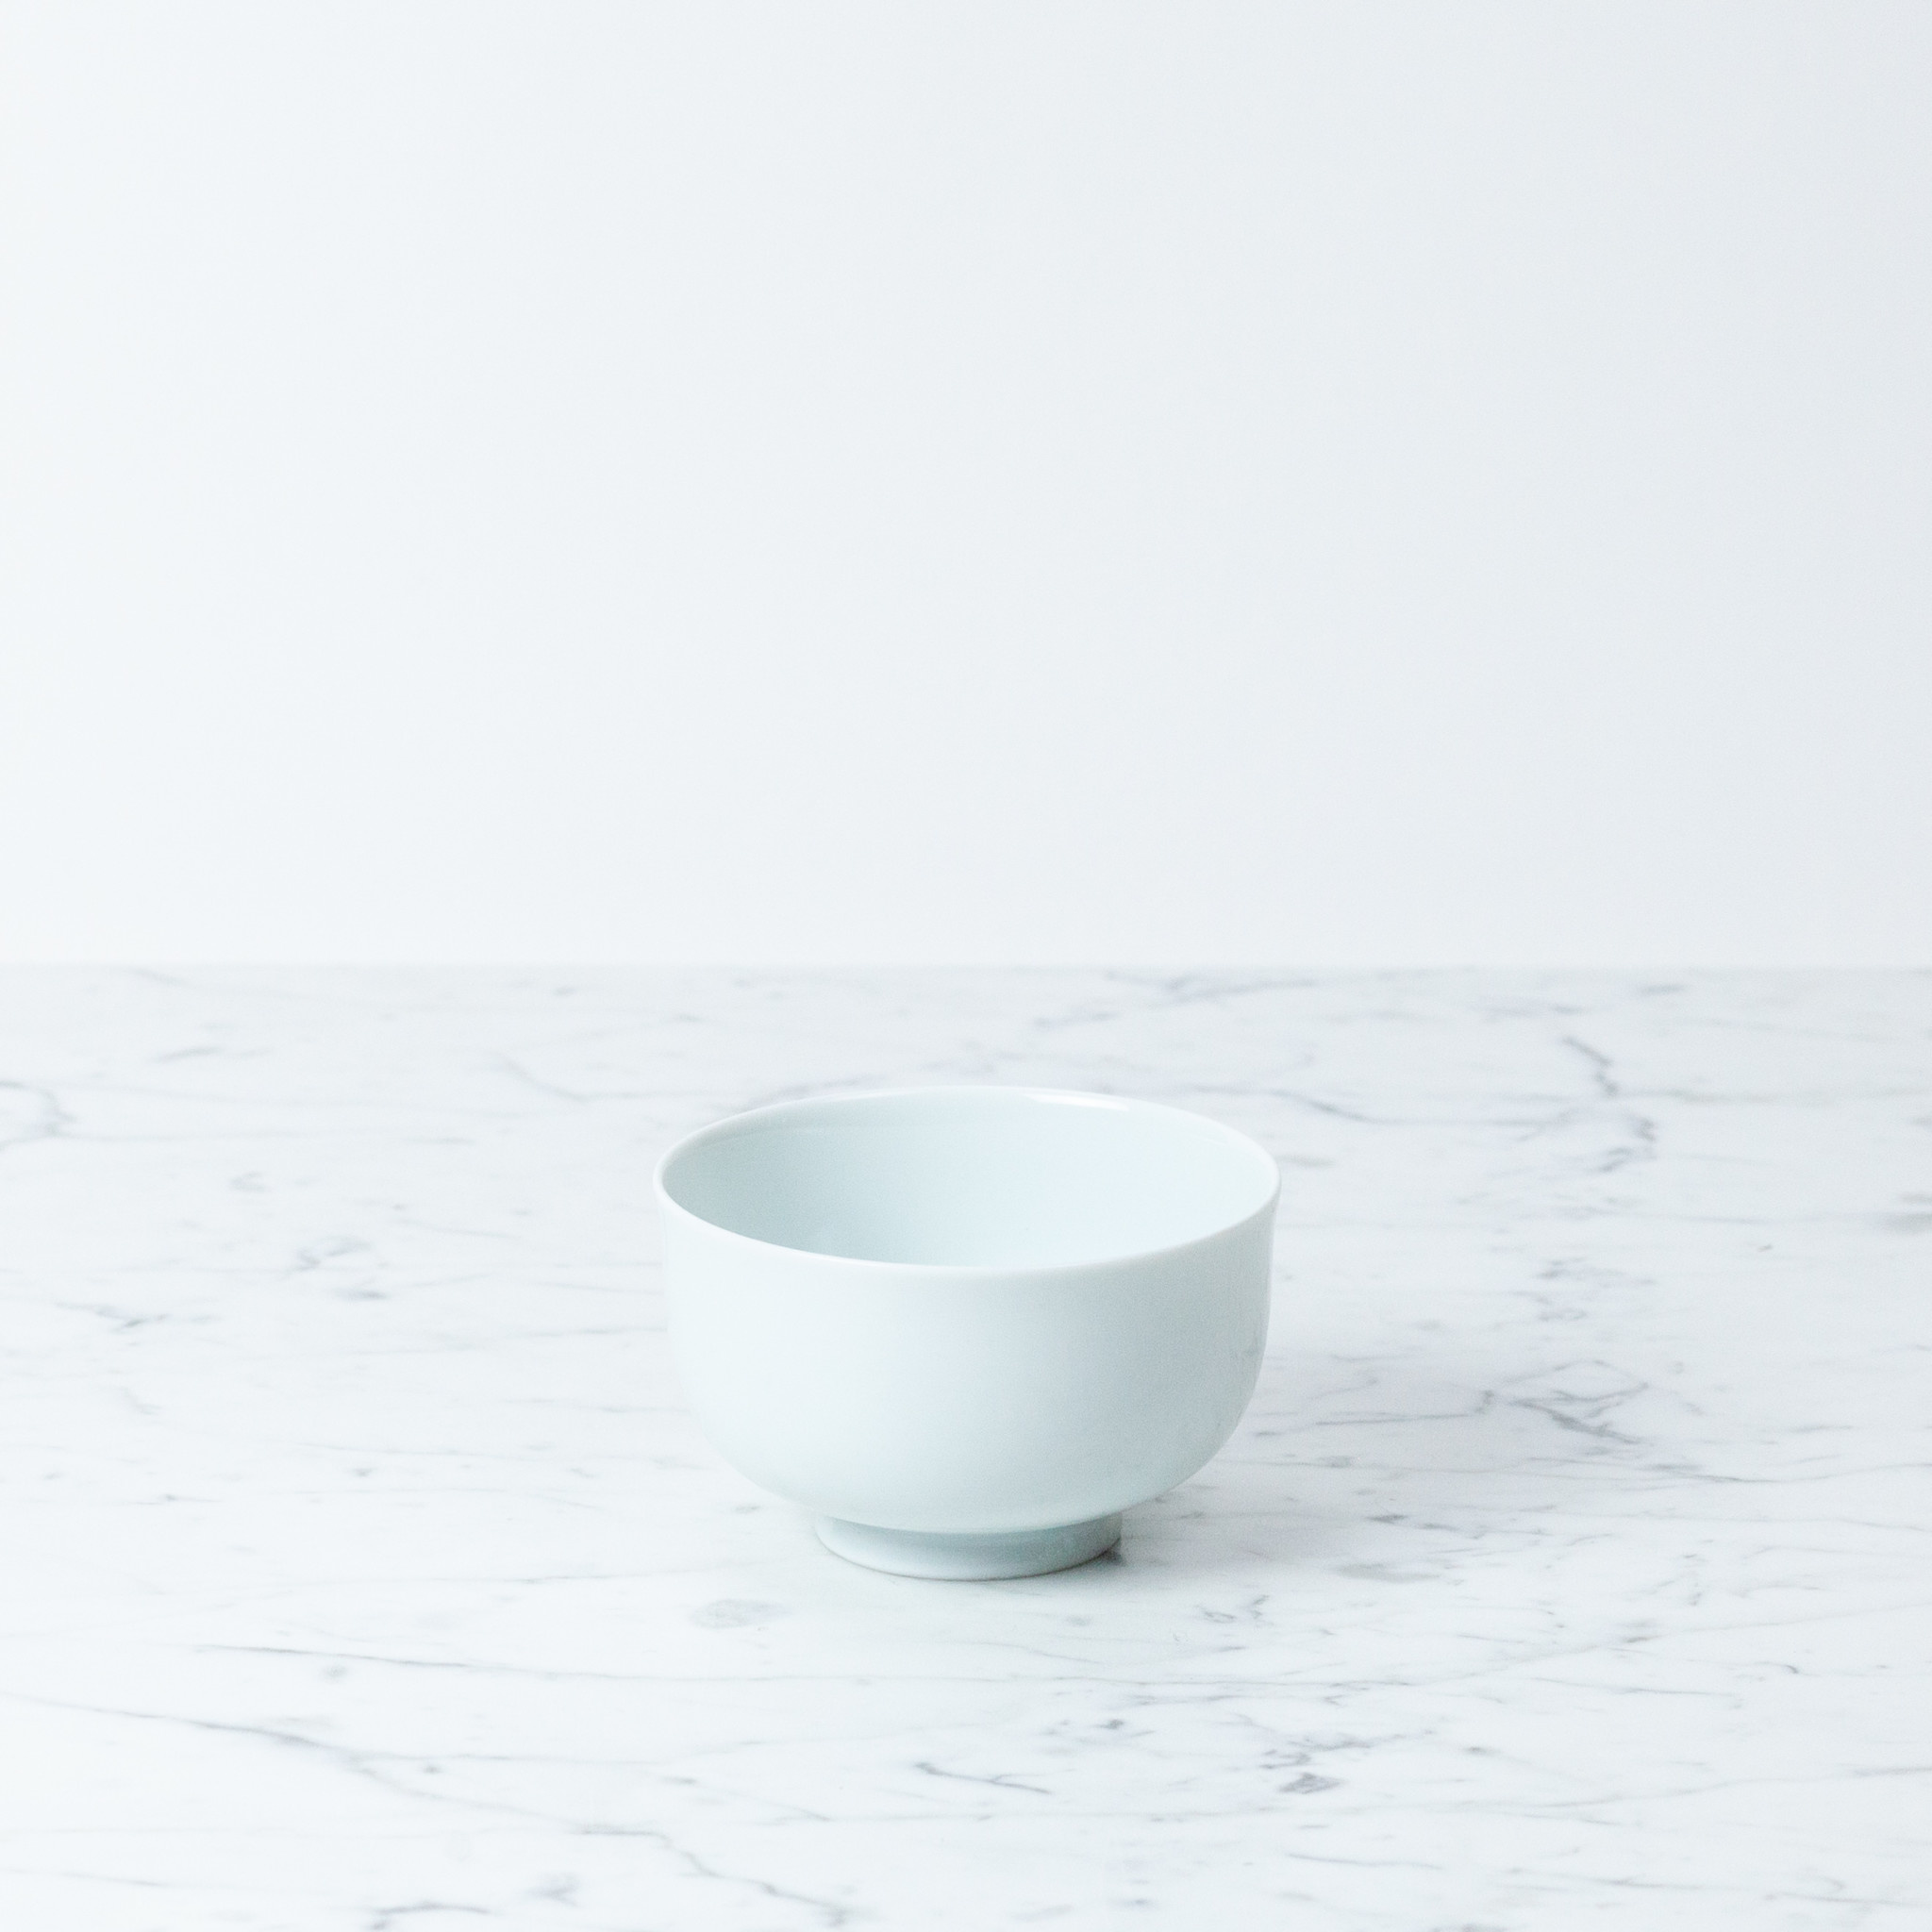 MIZU MIZU mizu-mizu Curved Bowl with Foot - Bluish White - Small - 4""